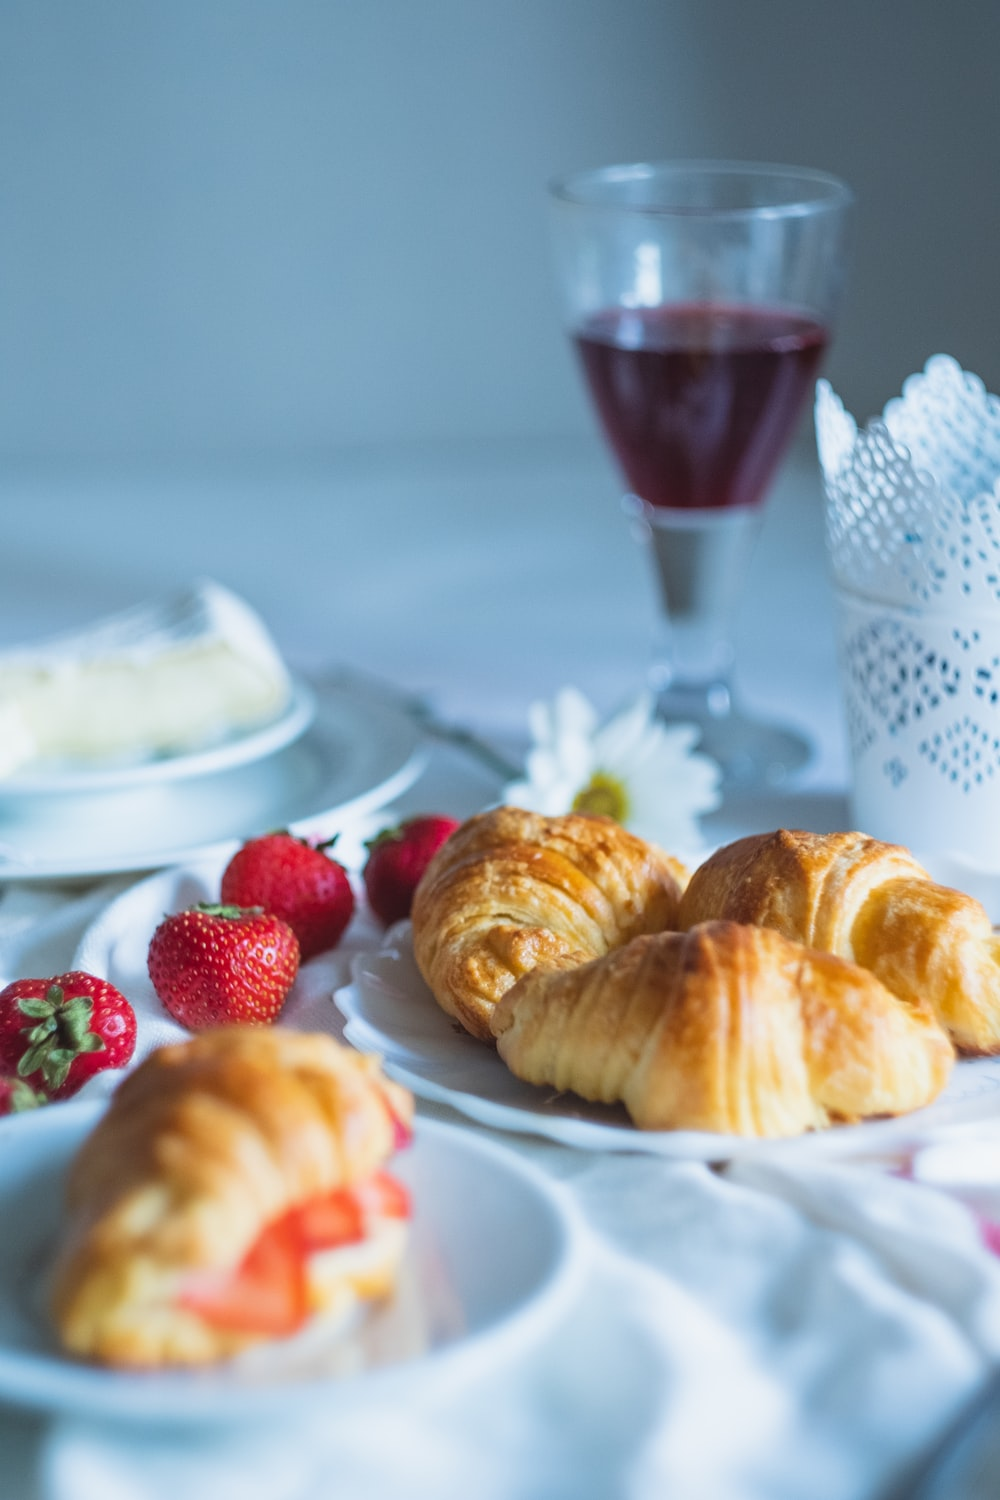 croissant in plate near strawberry fruits